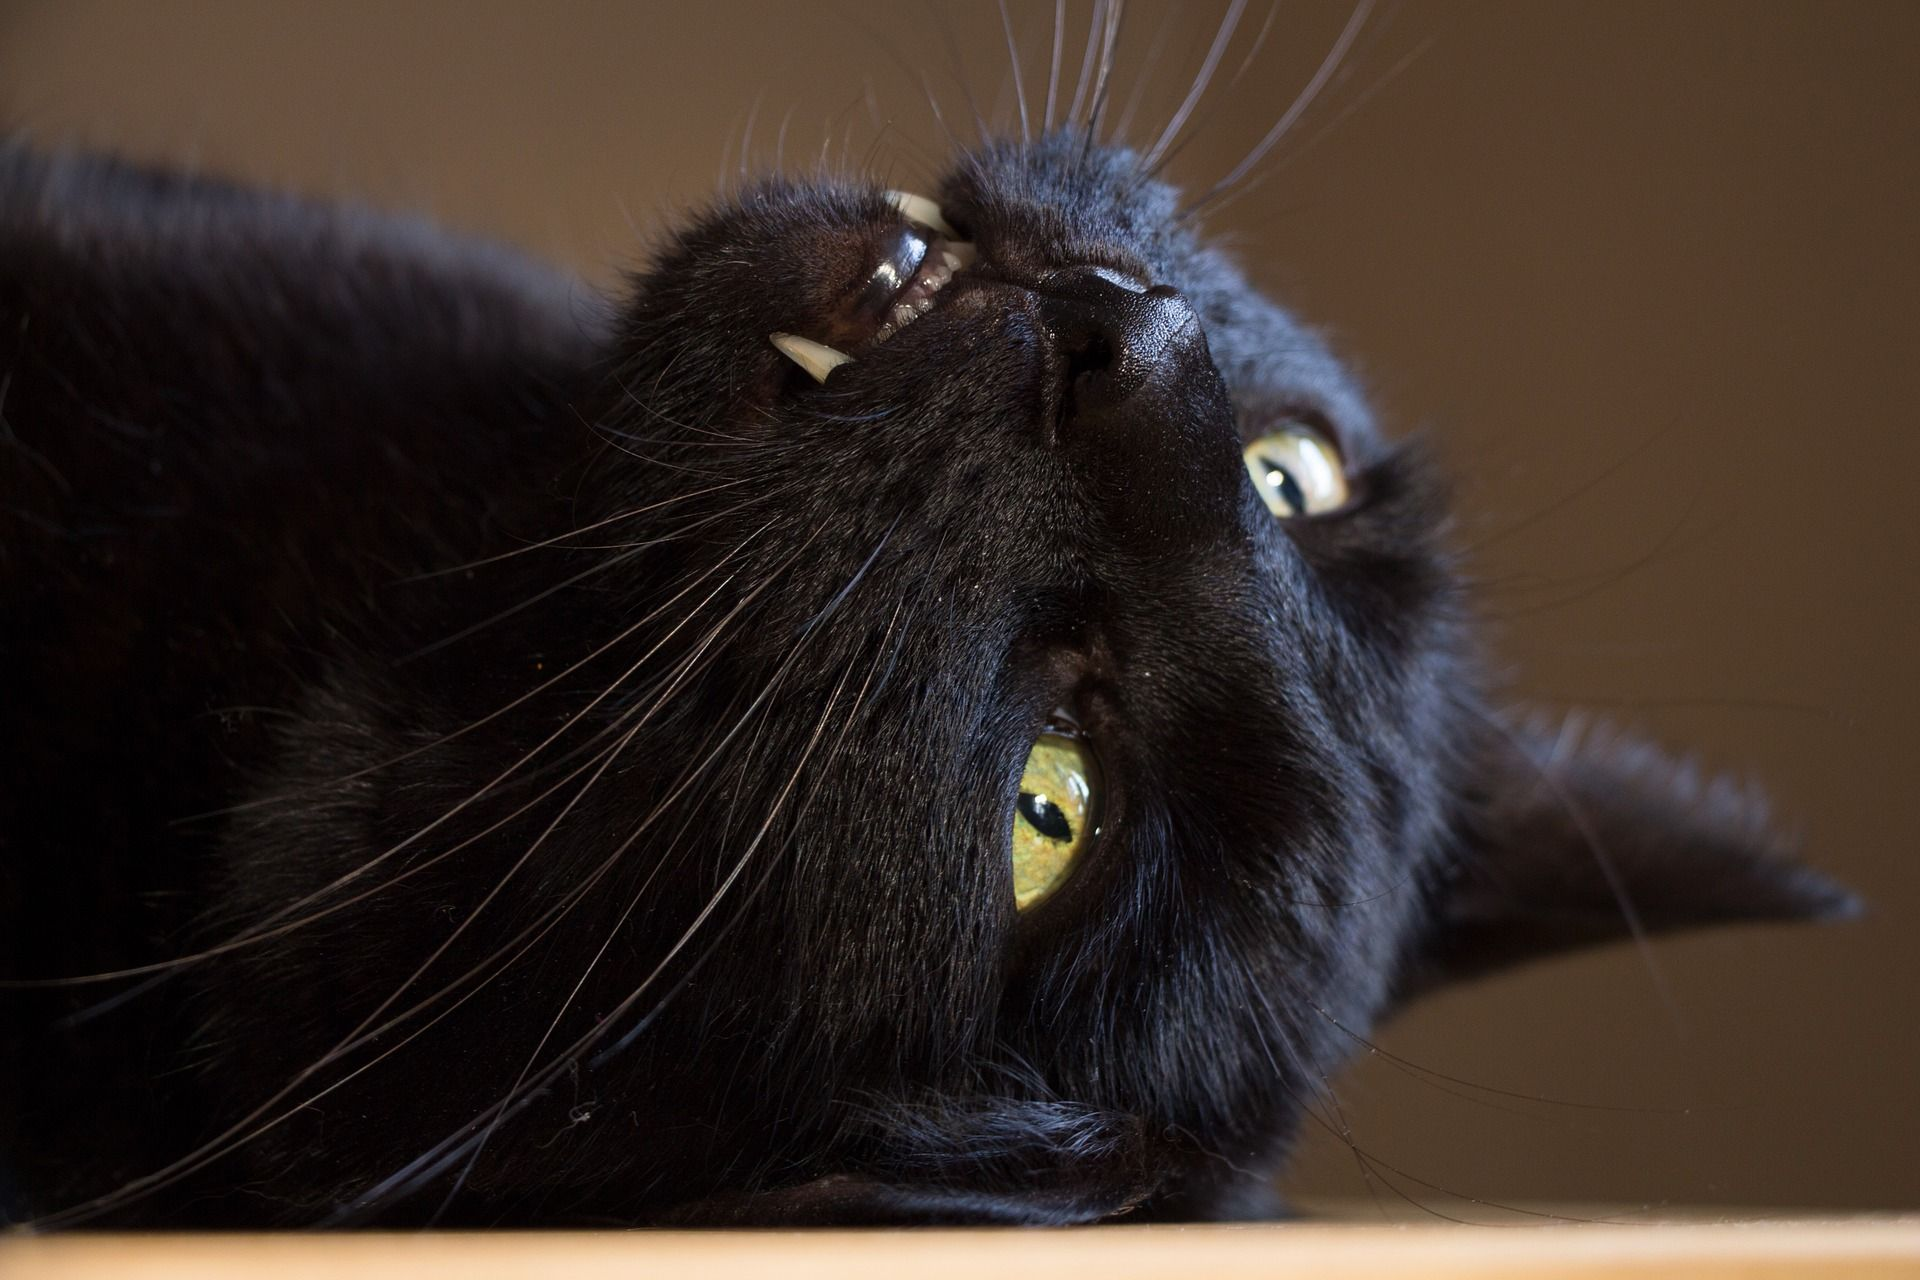 Angry Black Cat Wallpapers With Teeth